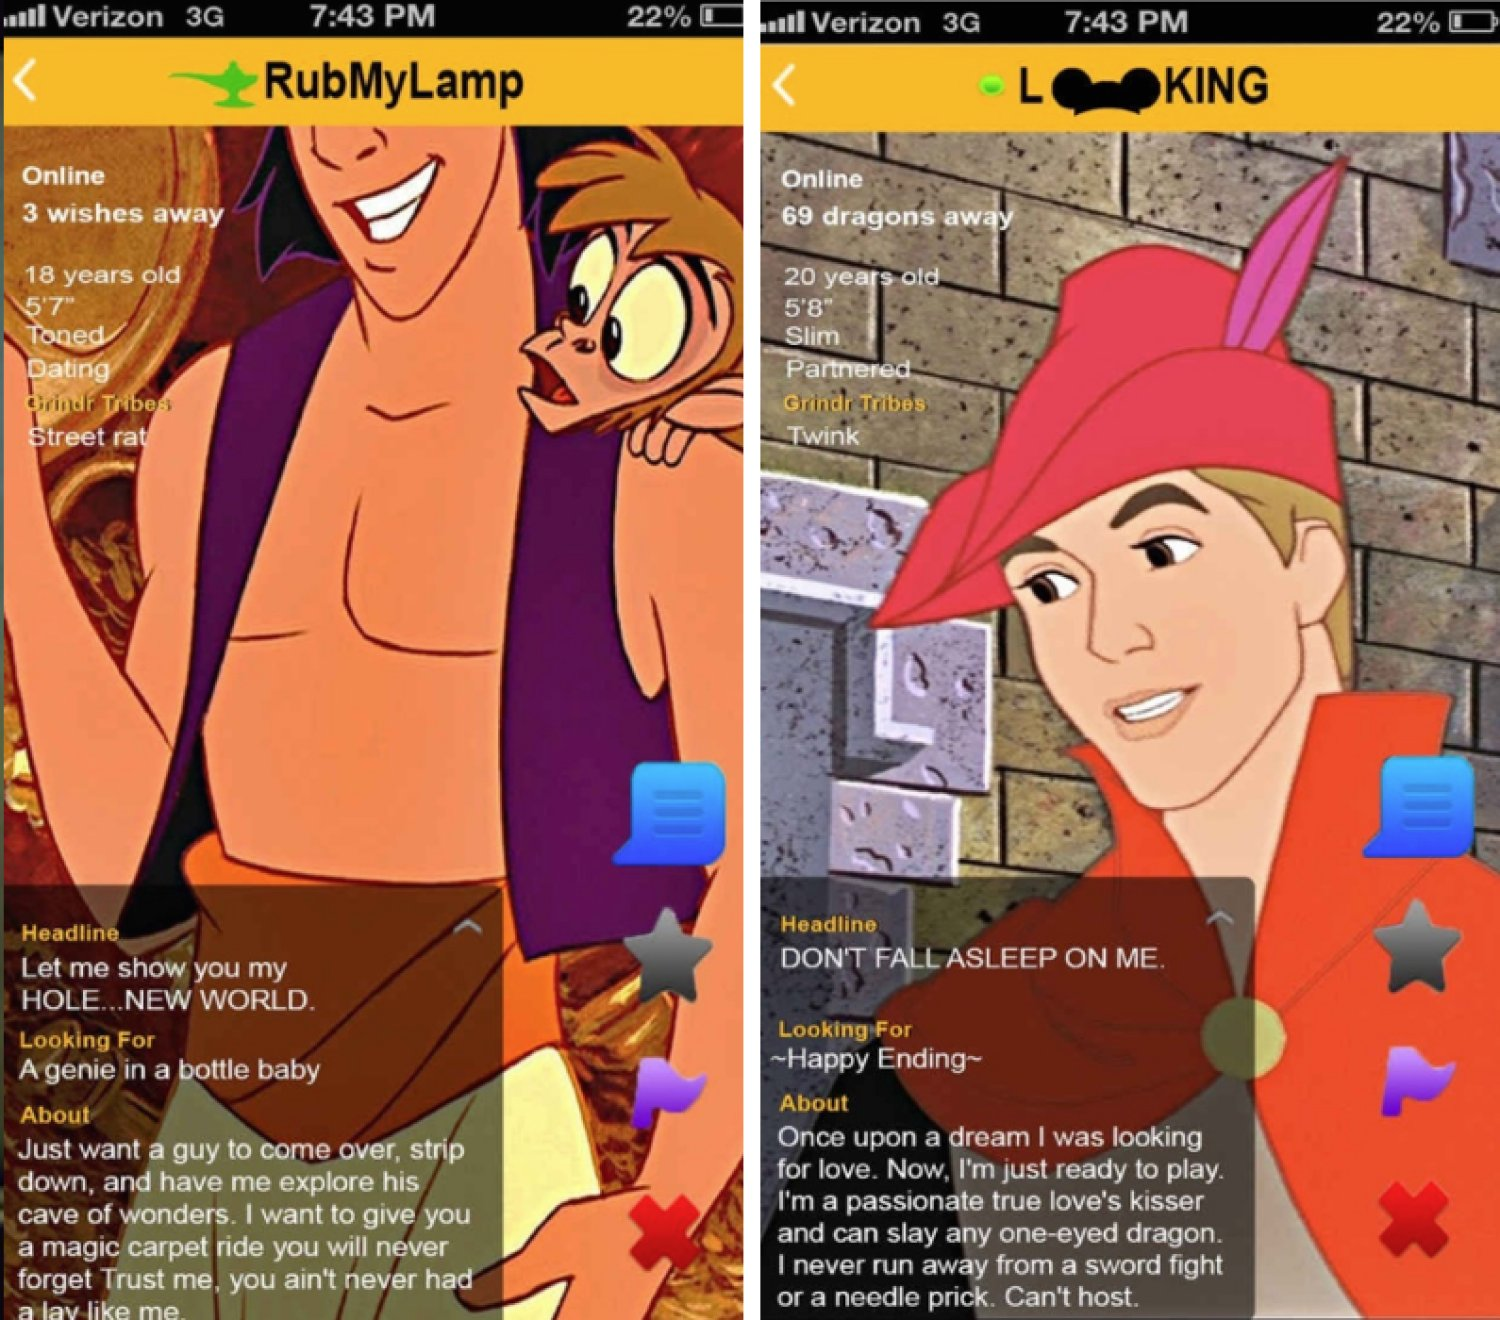 What if Disney princes had Grindr profiles?